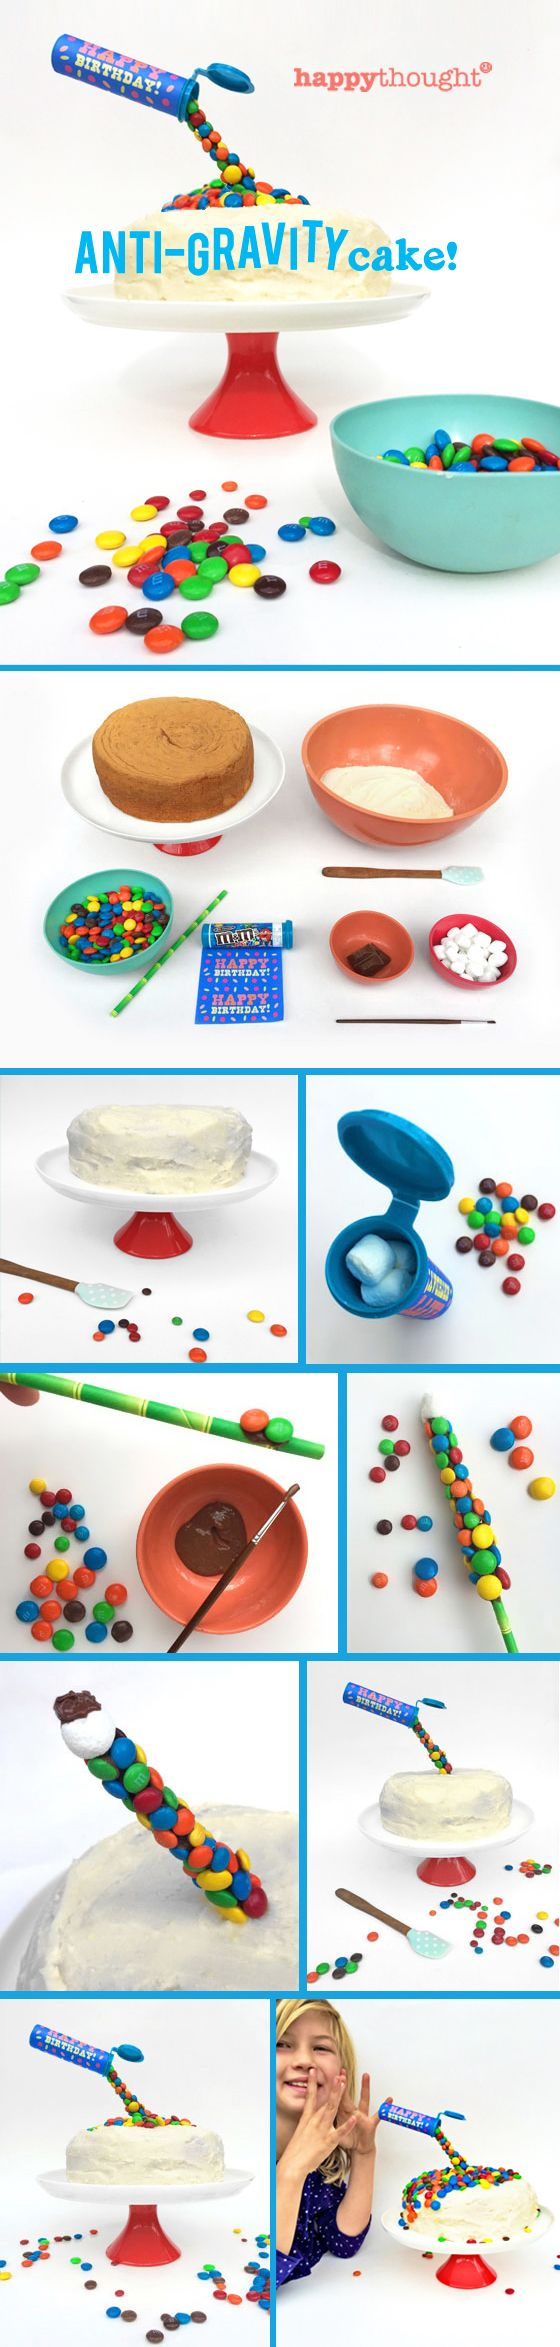 Birthday cake ideas: Make an Anti-Gravity M&M cake! https://happythought.co.uk/craft/birthday-cake-ideas